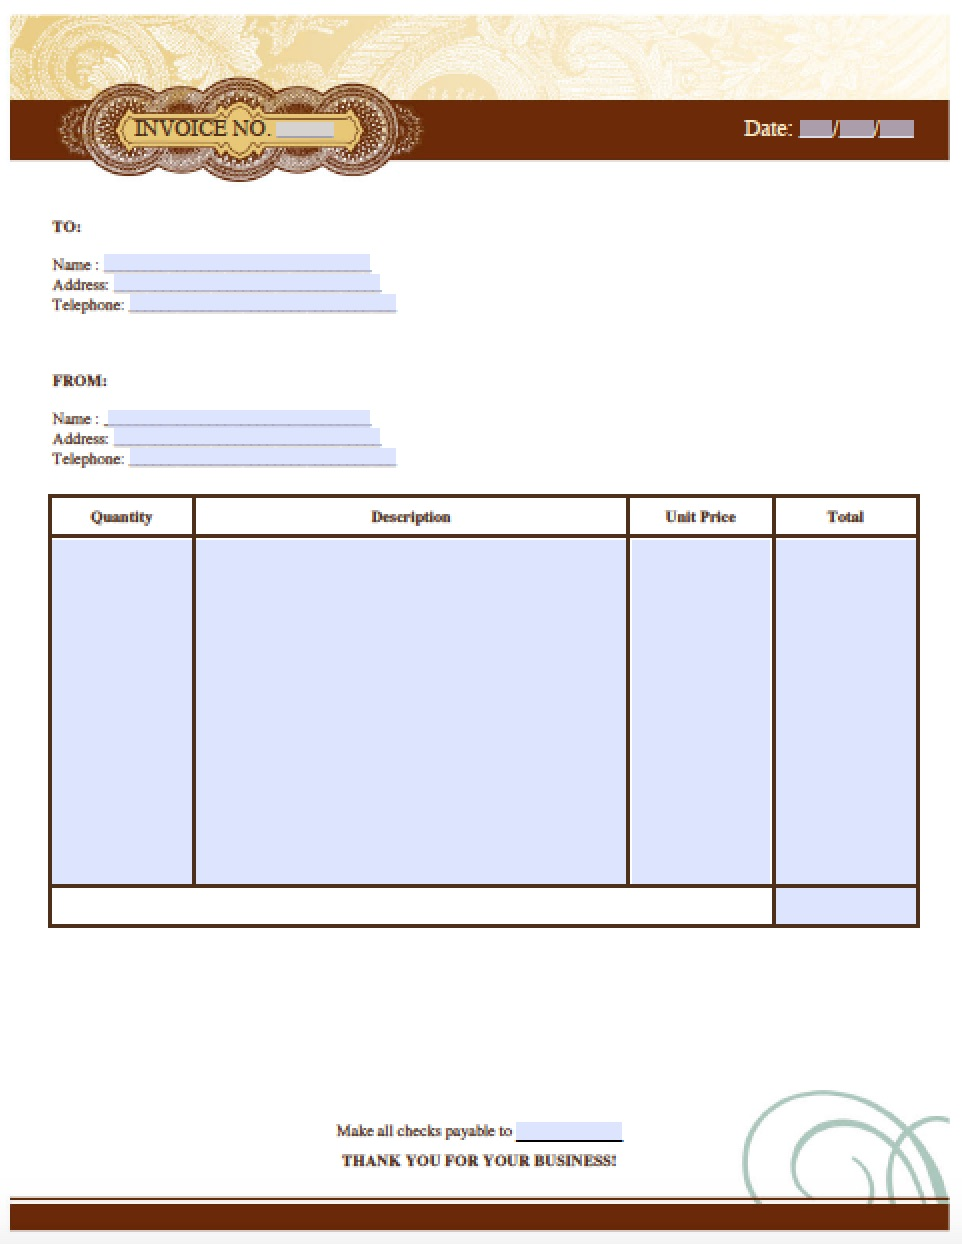 Free Artist Invoice Template Excel PDF Word Doc - Free online receipts invoices for service business